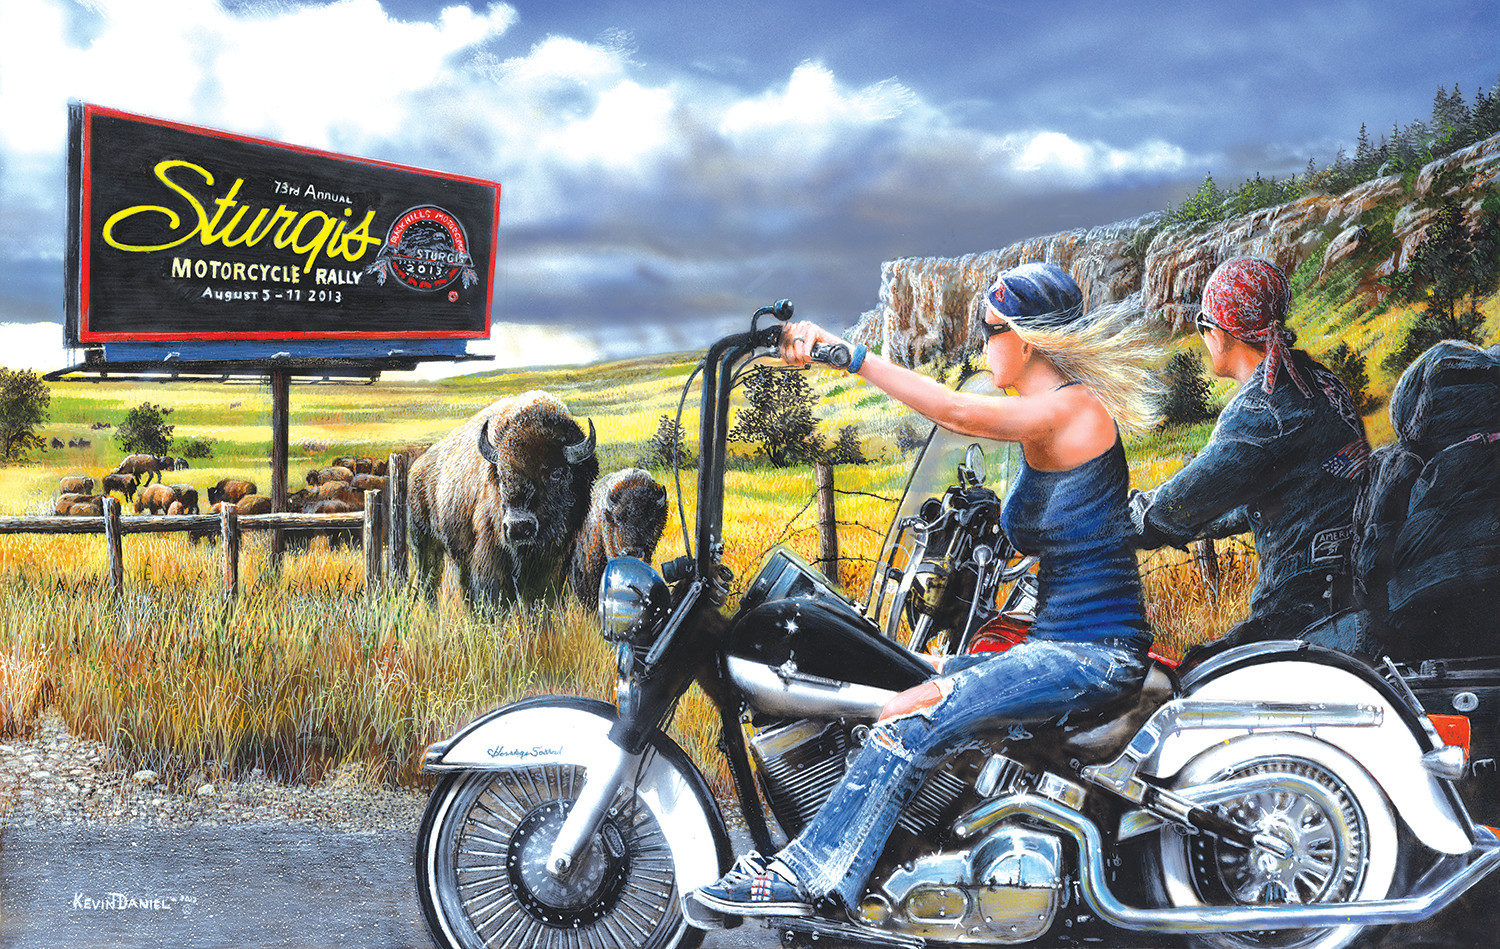 kevin-daniel-heading-for-sturgis, 12.95 EUR @ fou